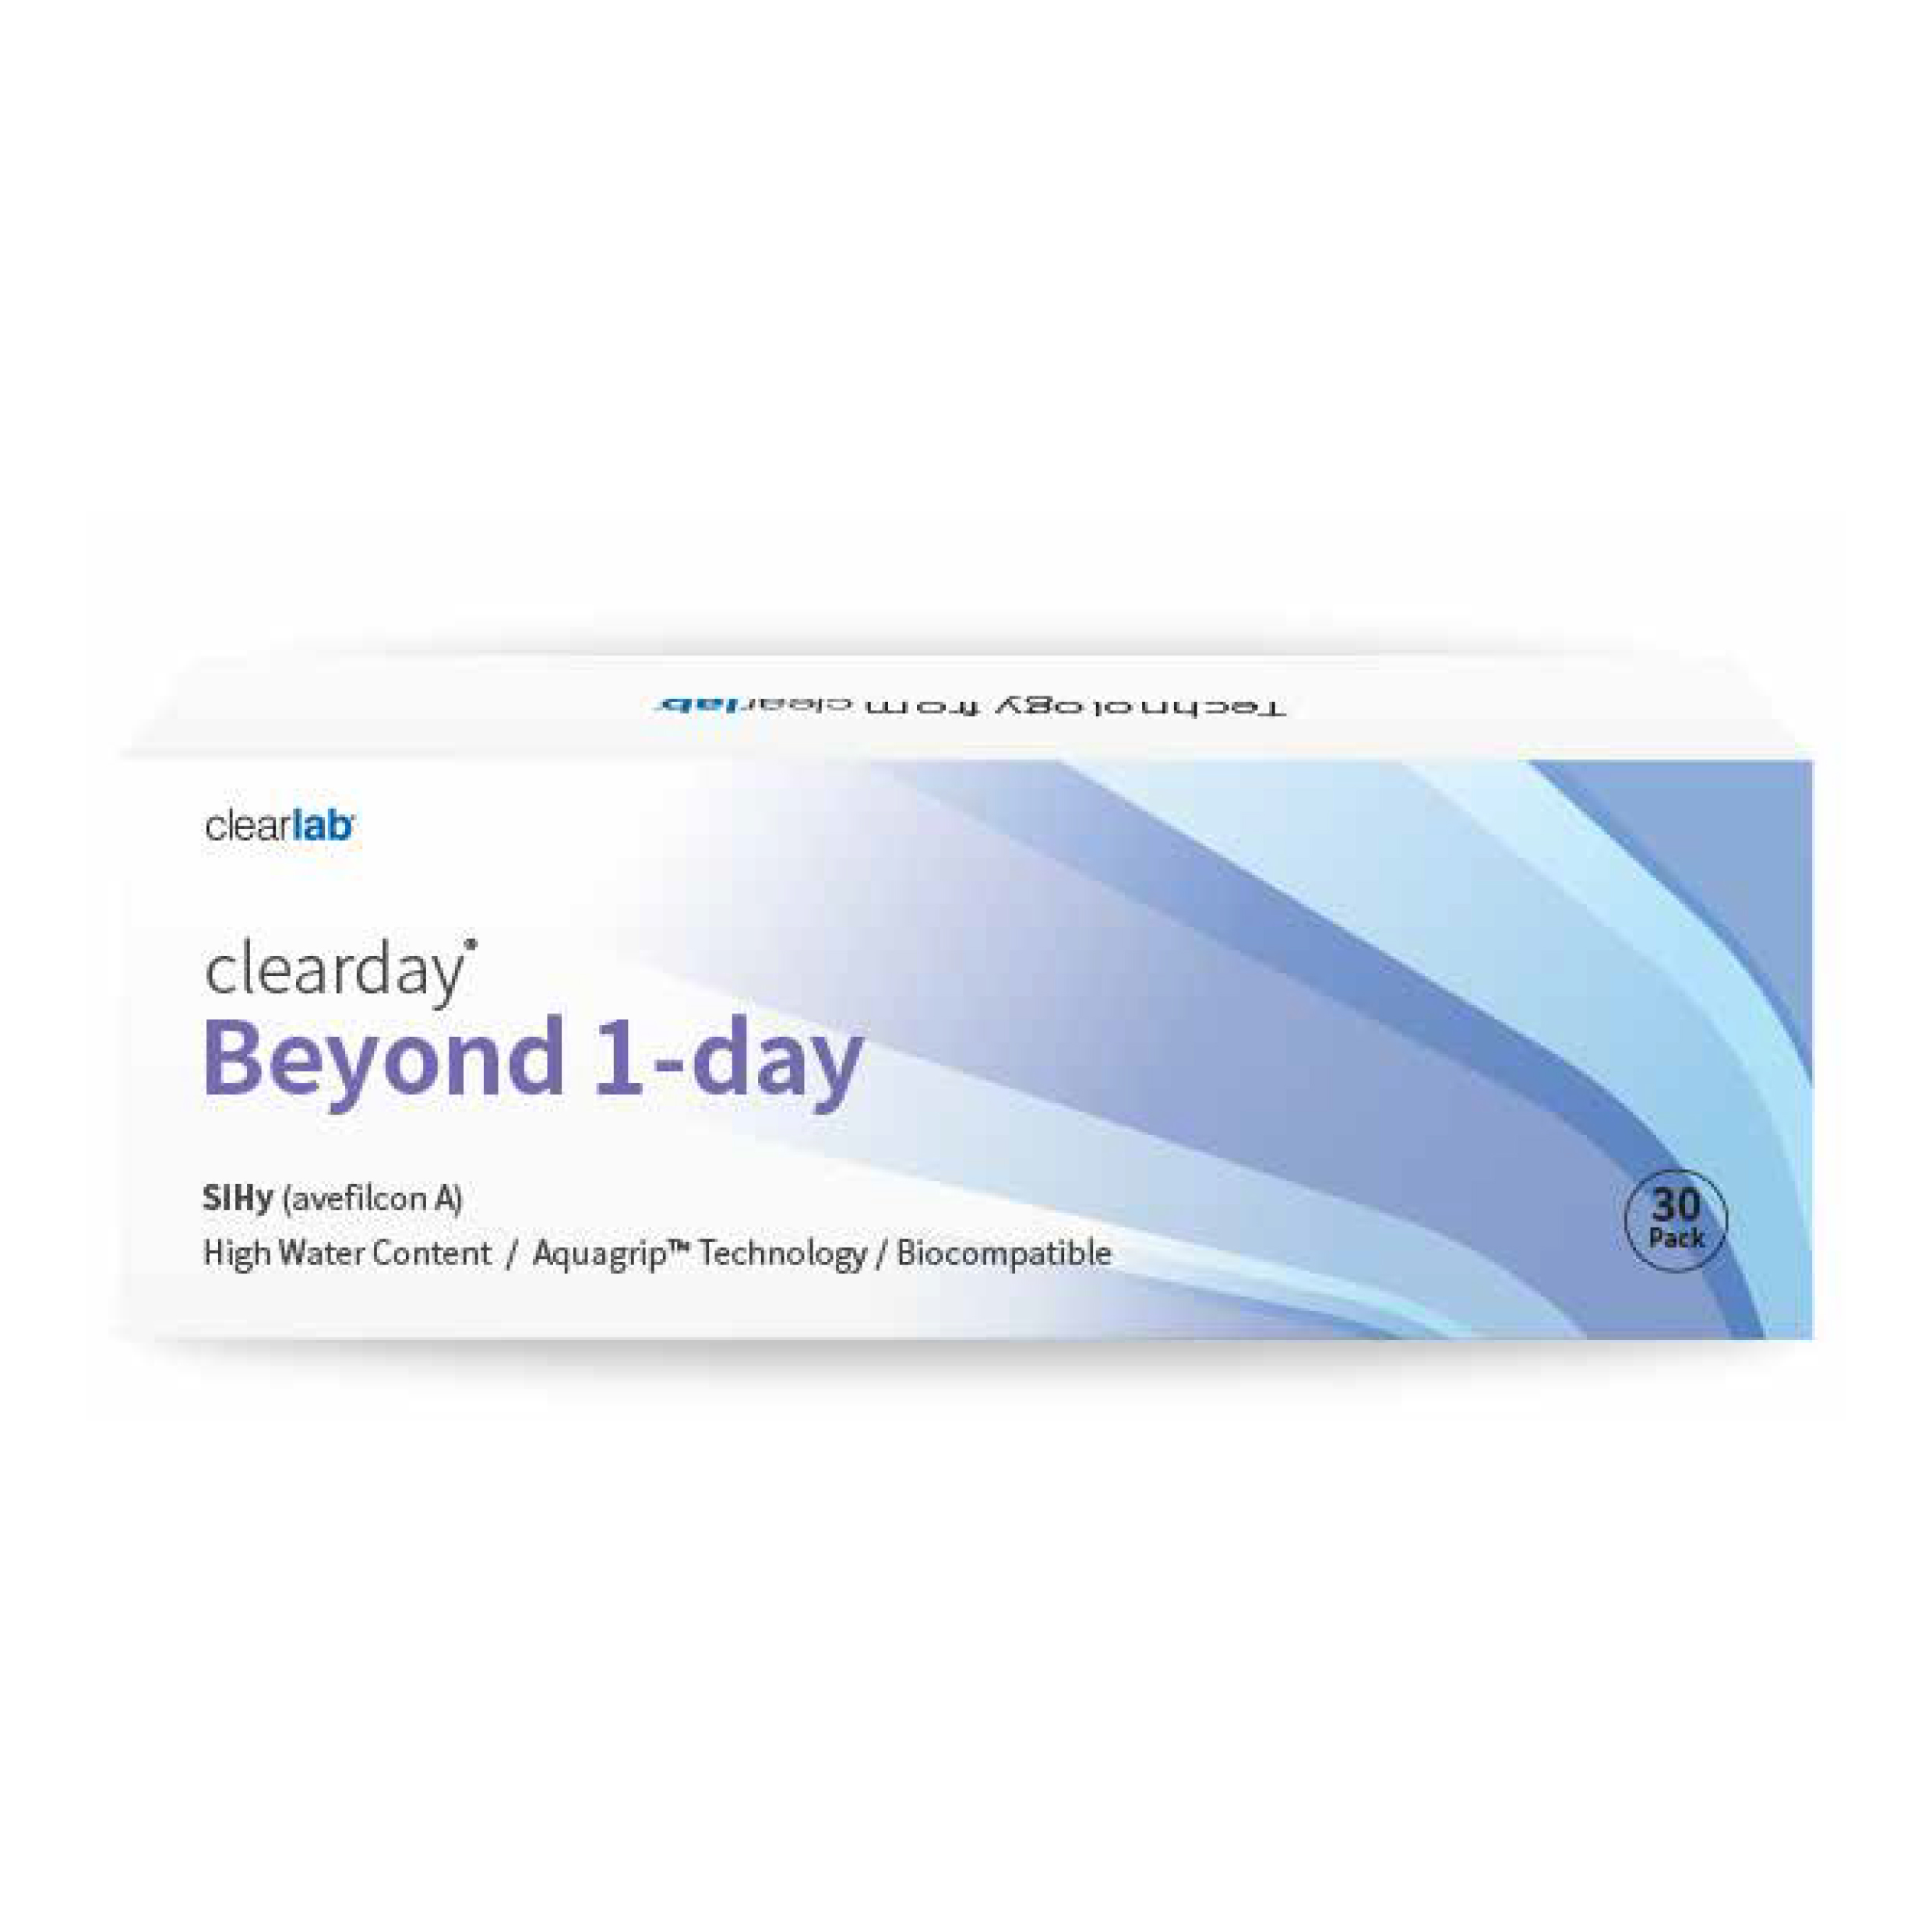 BEYOND 1-day SiHy